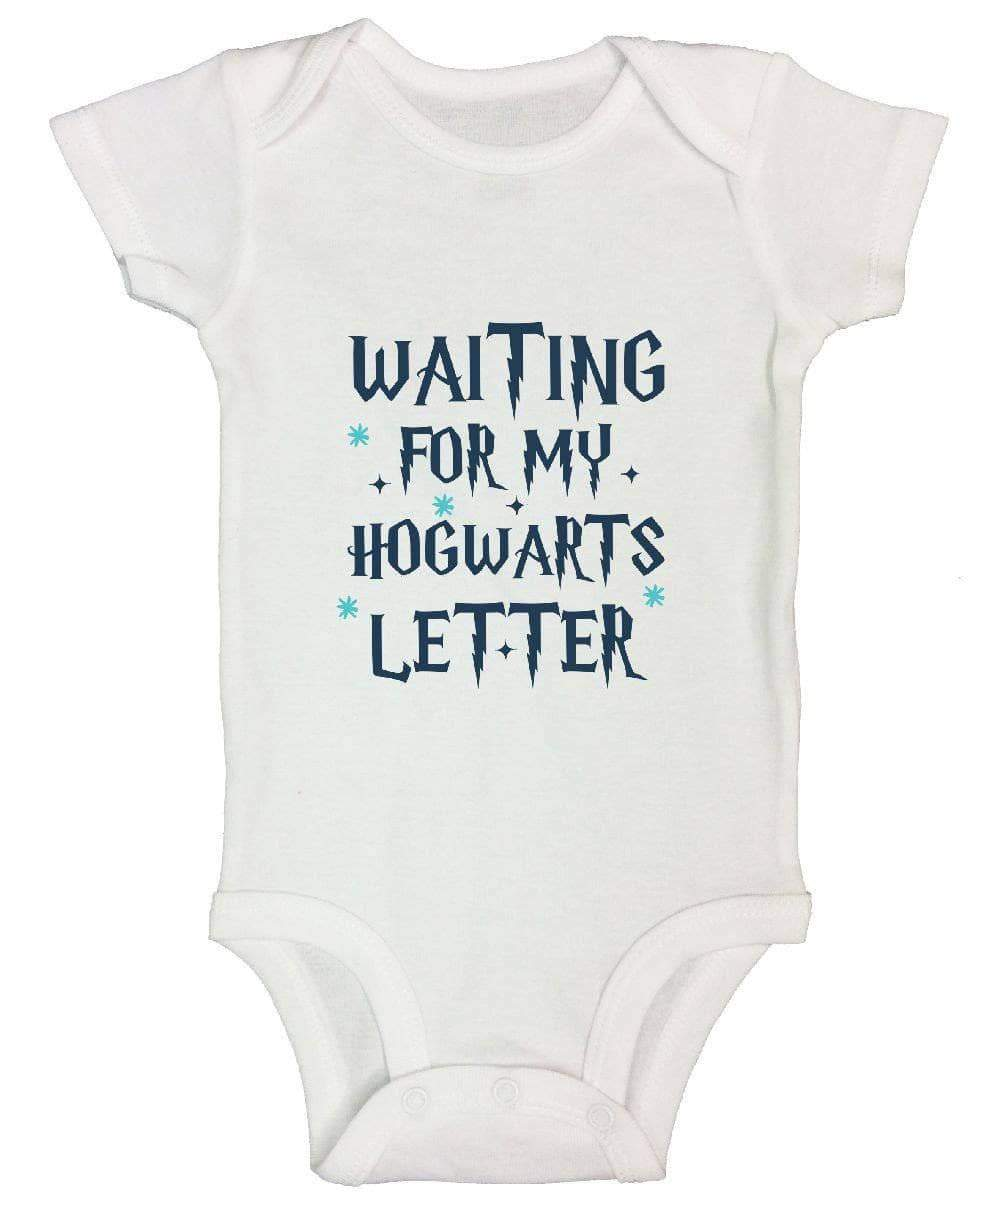 Waiting For My Hogwarts Letter FUNNY KIDS ONESIE Short Sleeve 0-3 Months Womens Tank Tops